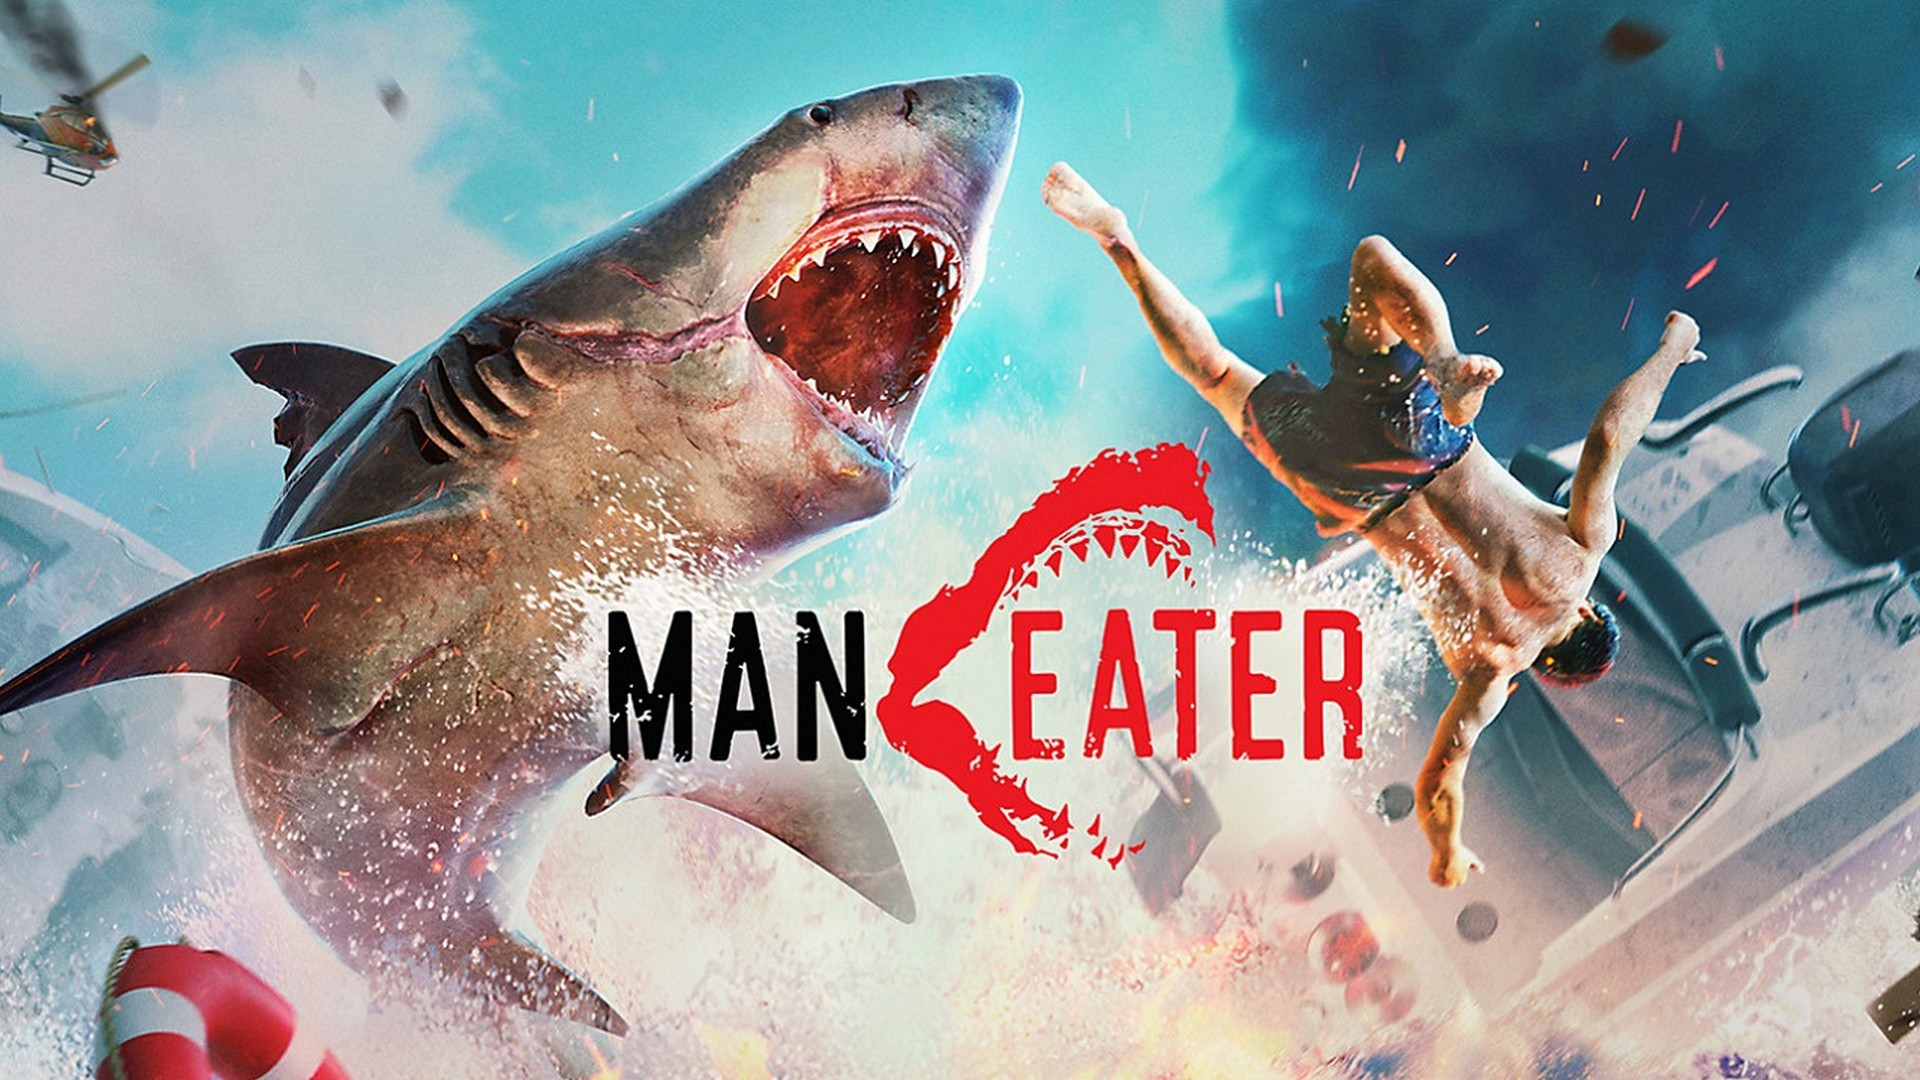 Become the Ultimate Apex Predator of the Seas in Maneater, Gaming's First ShARkPG Out Now on  PlayStation®4, Xbox One, and PC